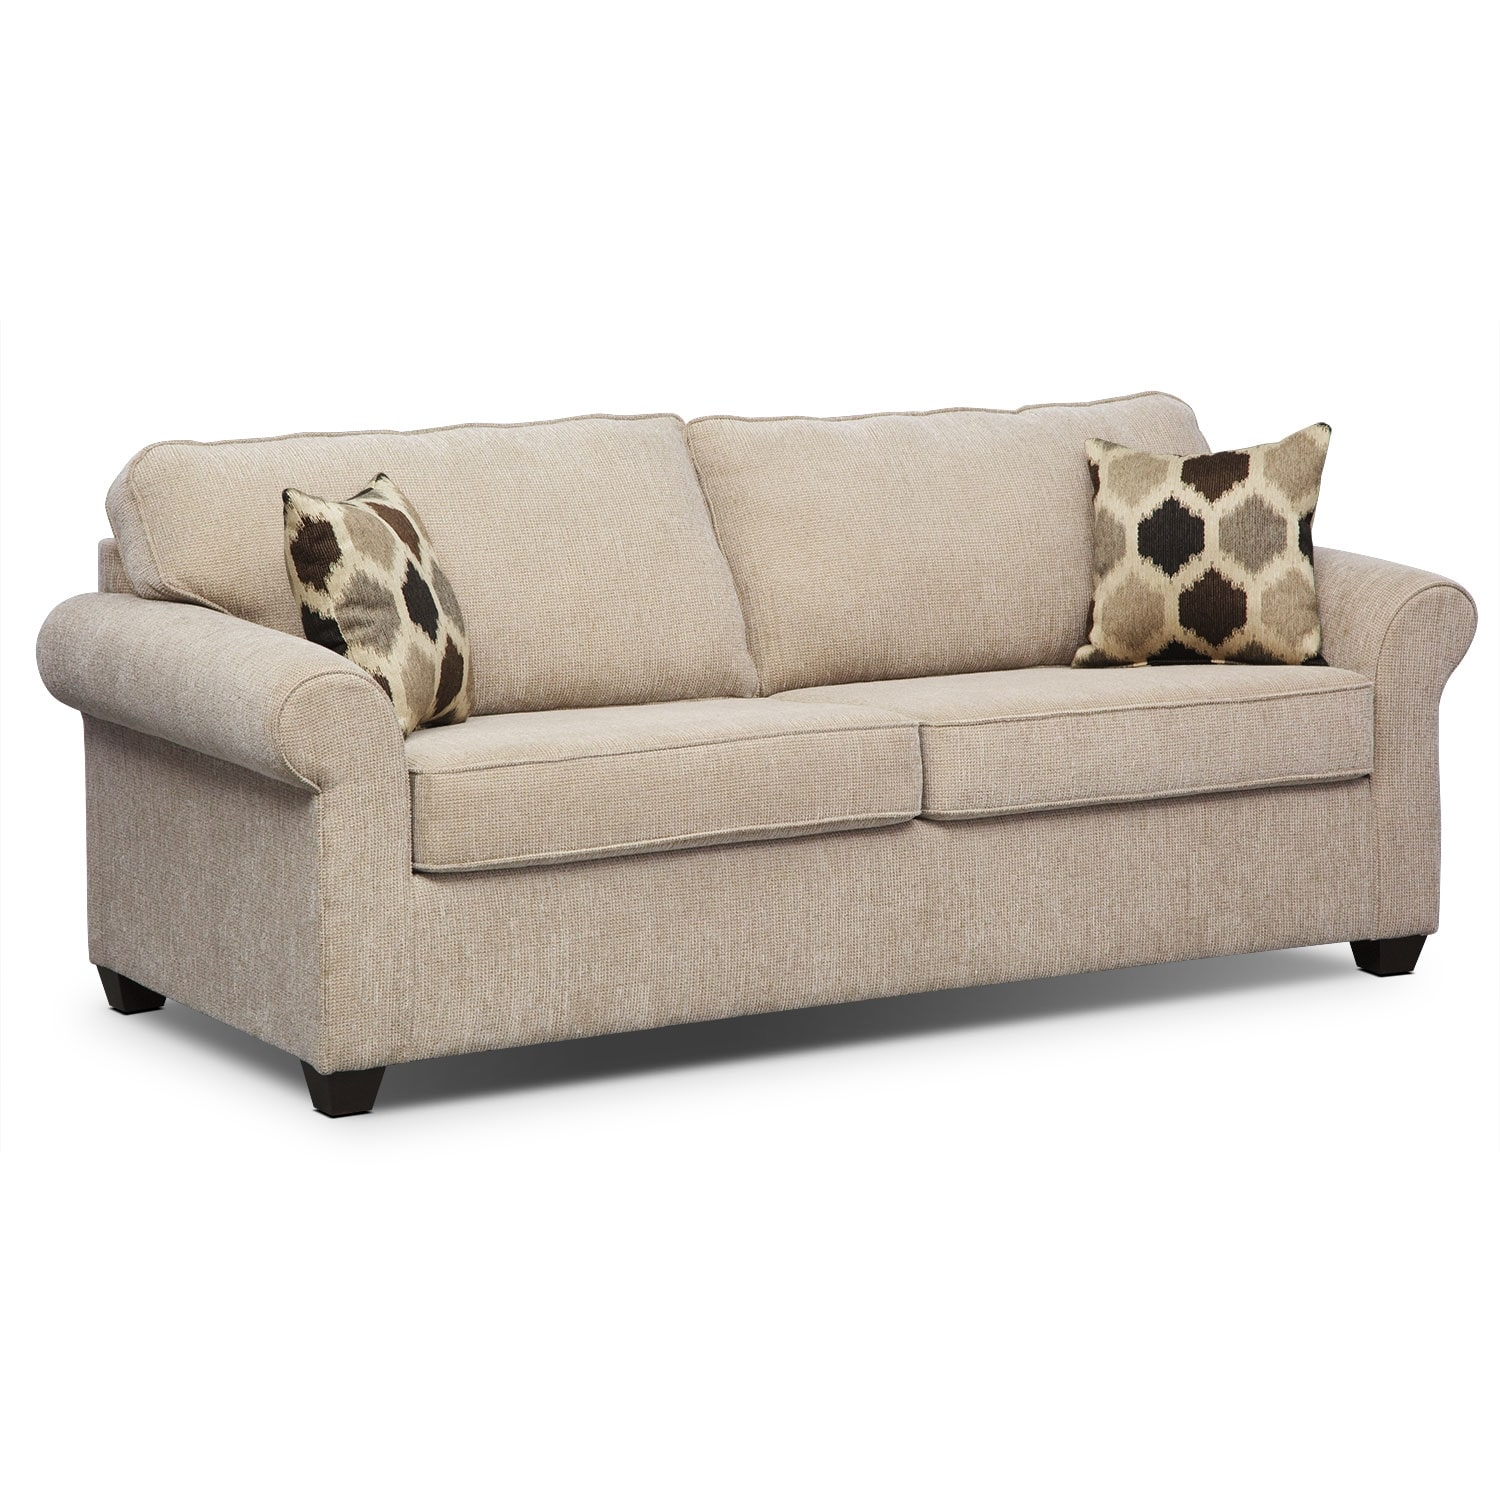 Living Room Furniture - Fletcher Queen Innerspring Sleeper Sofa - Beige